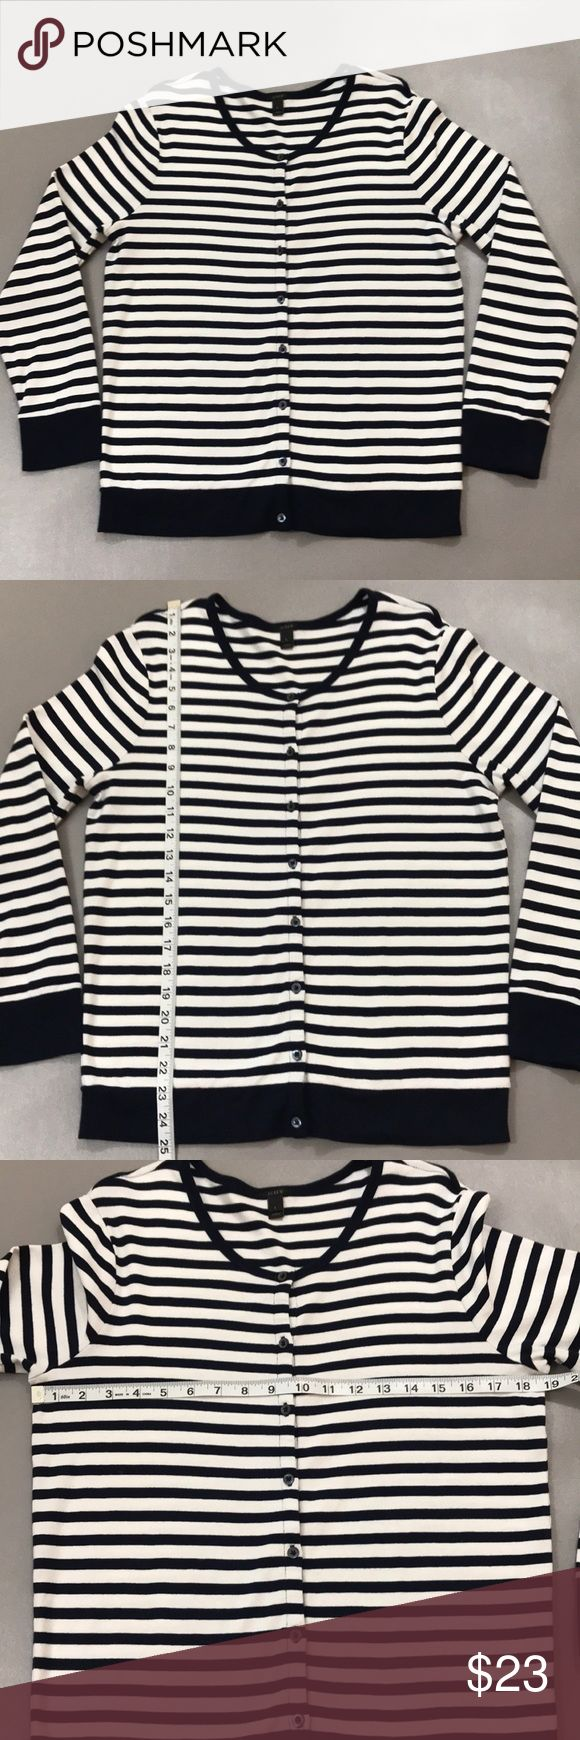 J. Crew Cardigan Pre-Owned J. Crew Navy Blue and White Cardigan 100% Cotton Great Condition J. Crew Sweaters Cardigans